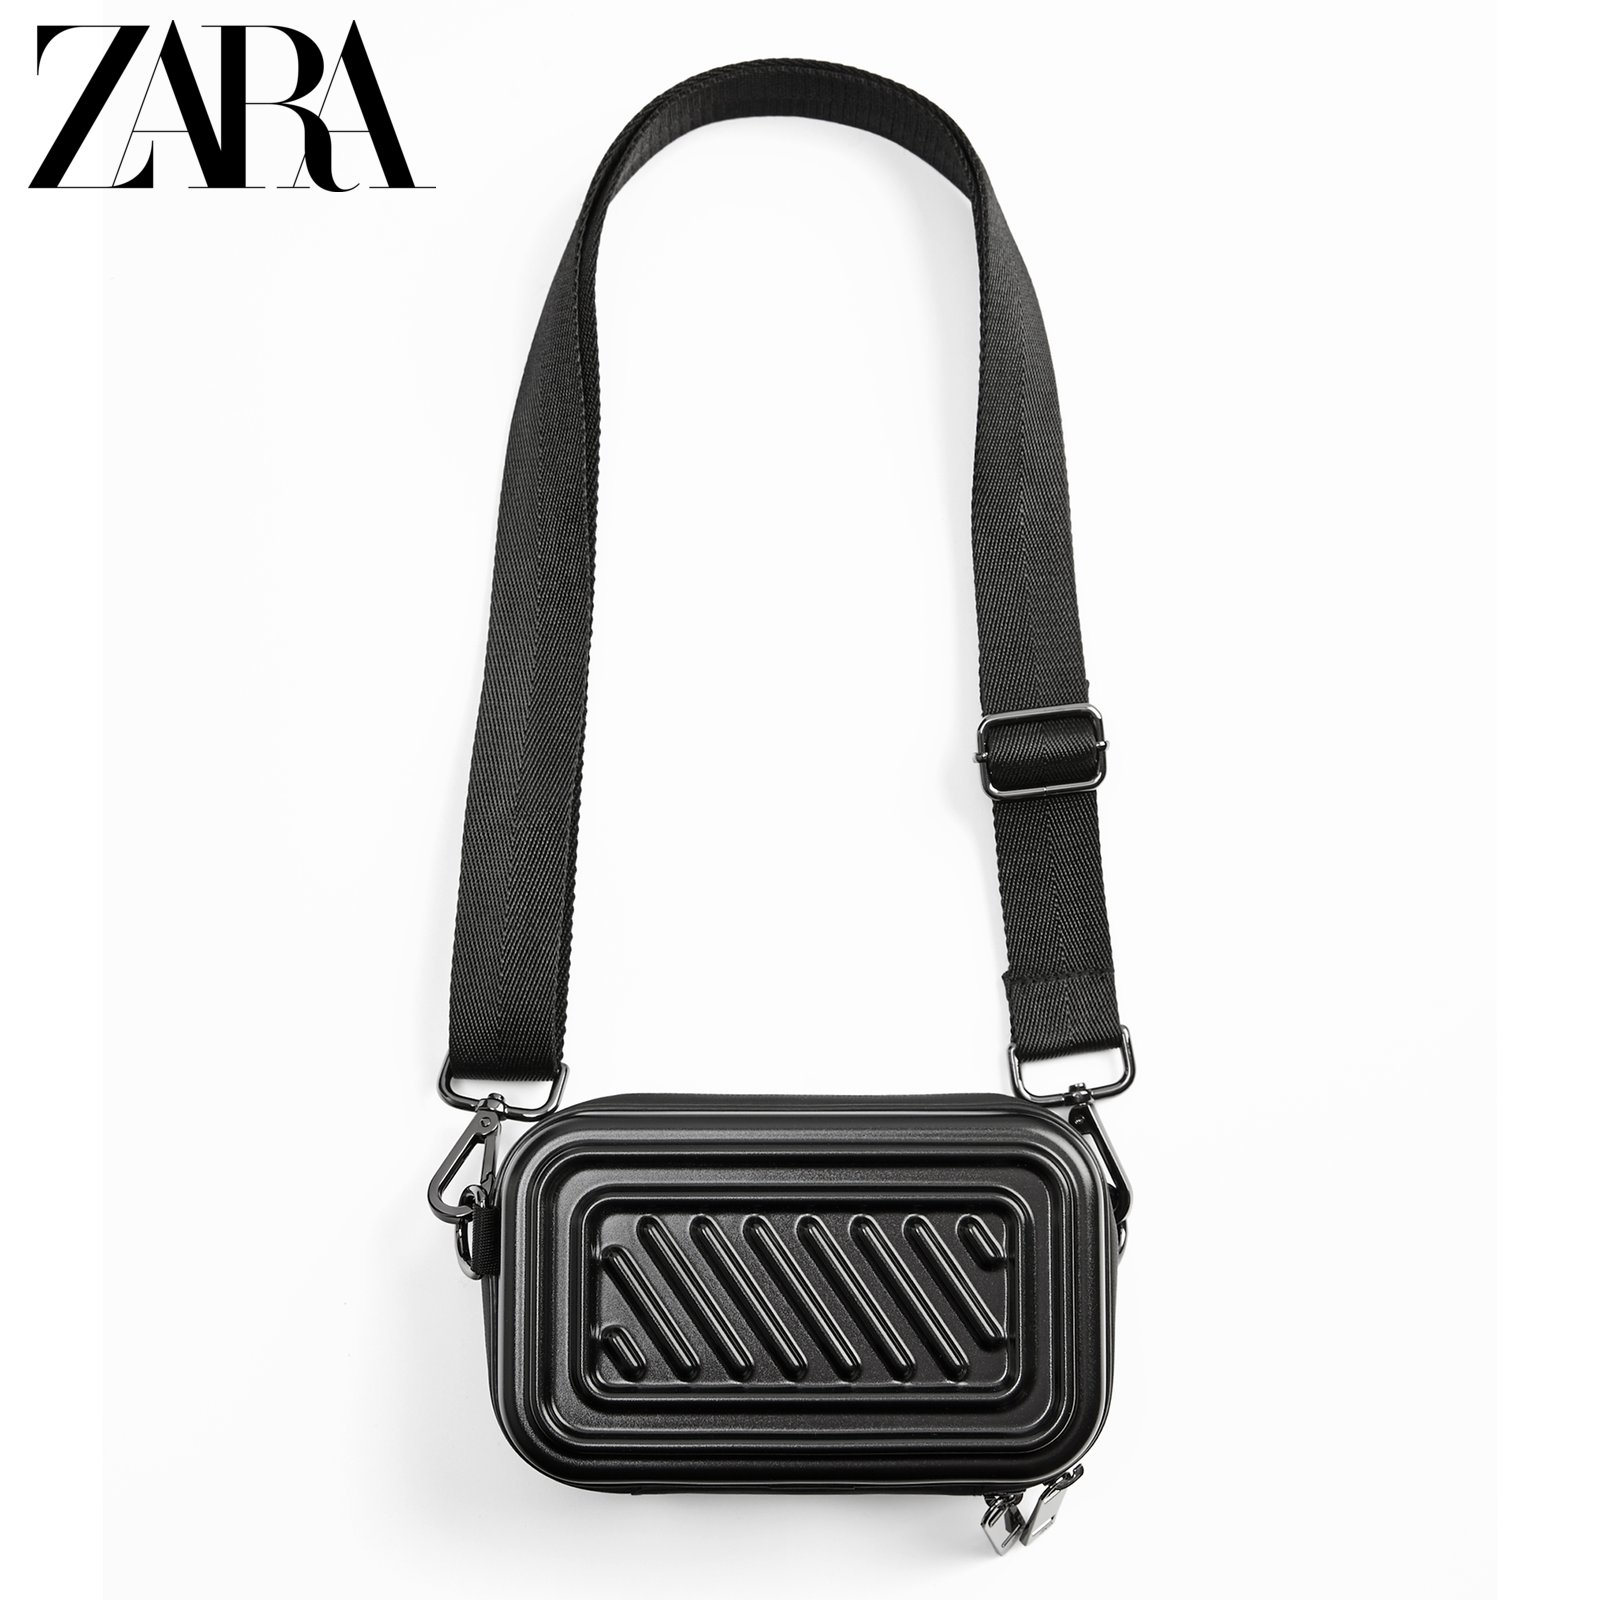 ZARA new men's bag black hard box-shaped mini envelope bag waist bag messenger bag 13600620040